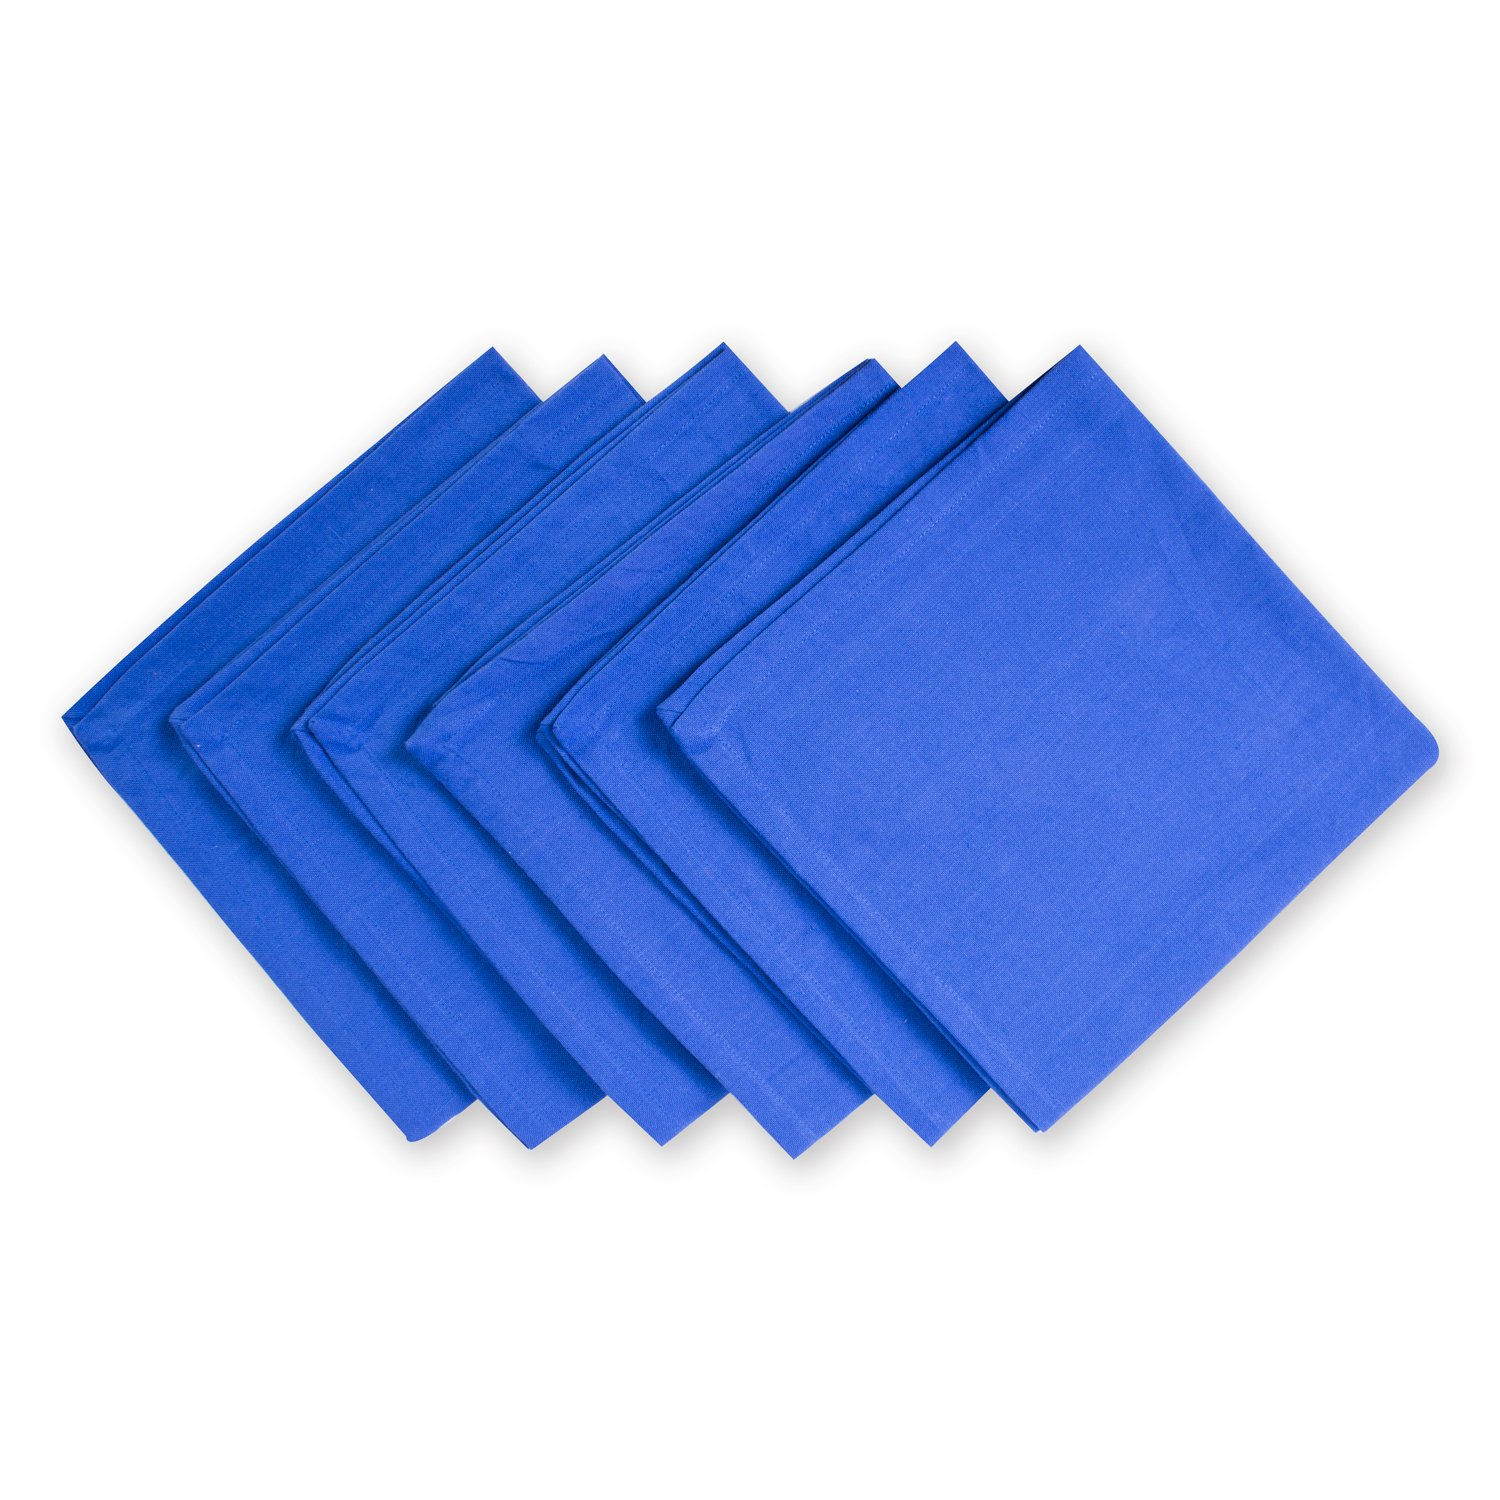 DII 100% Cotton Cloth Napkins, Oversized 20x20 Dinner Napkins, for Basic Everyday Use, Banquets, Weddings, Events, or Family Gatherings - Set of 6, Blue Jay